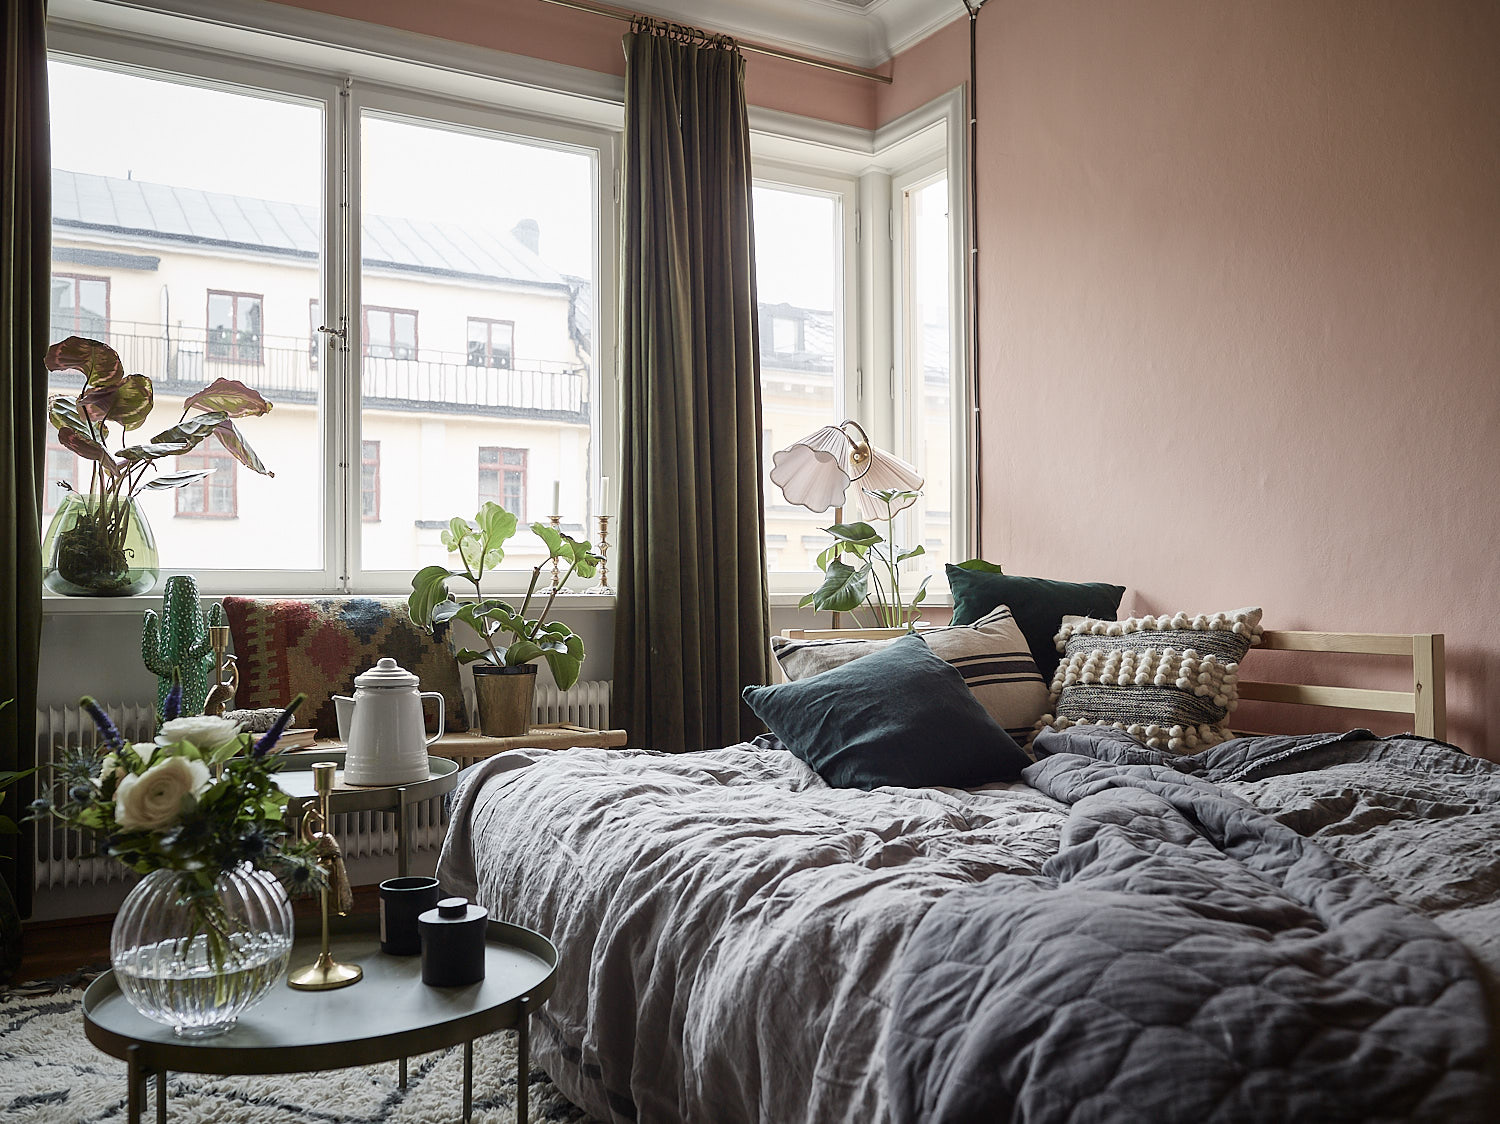 2. Blush Pink is a Neutral